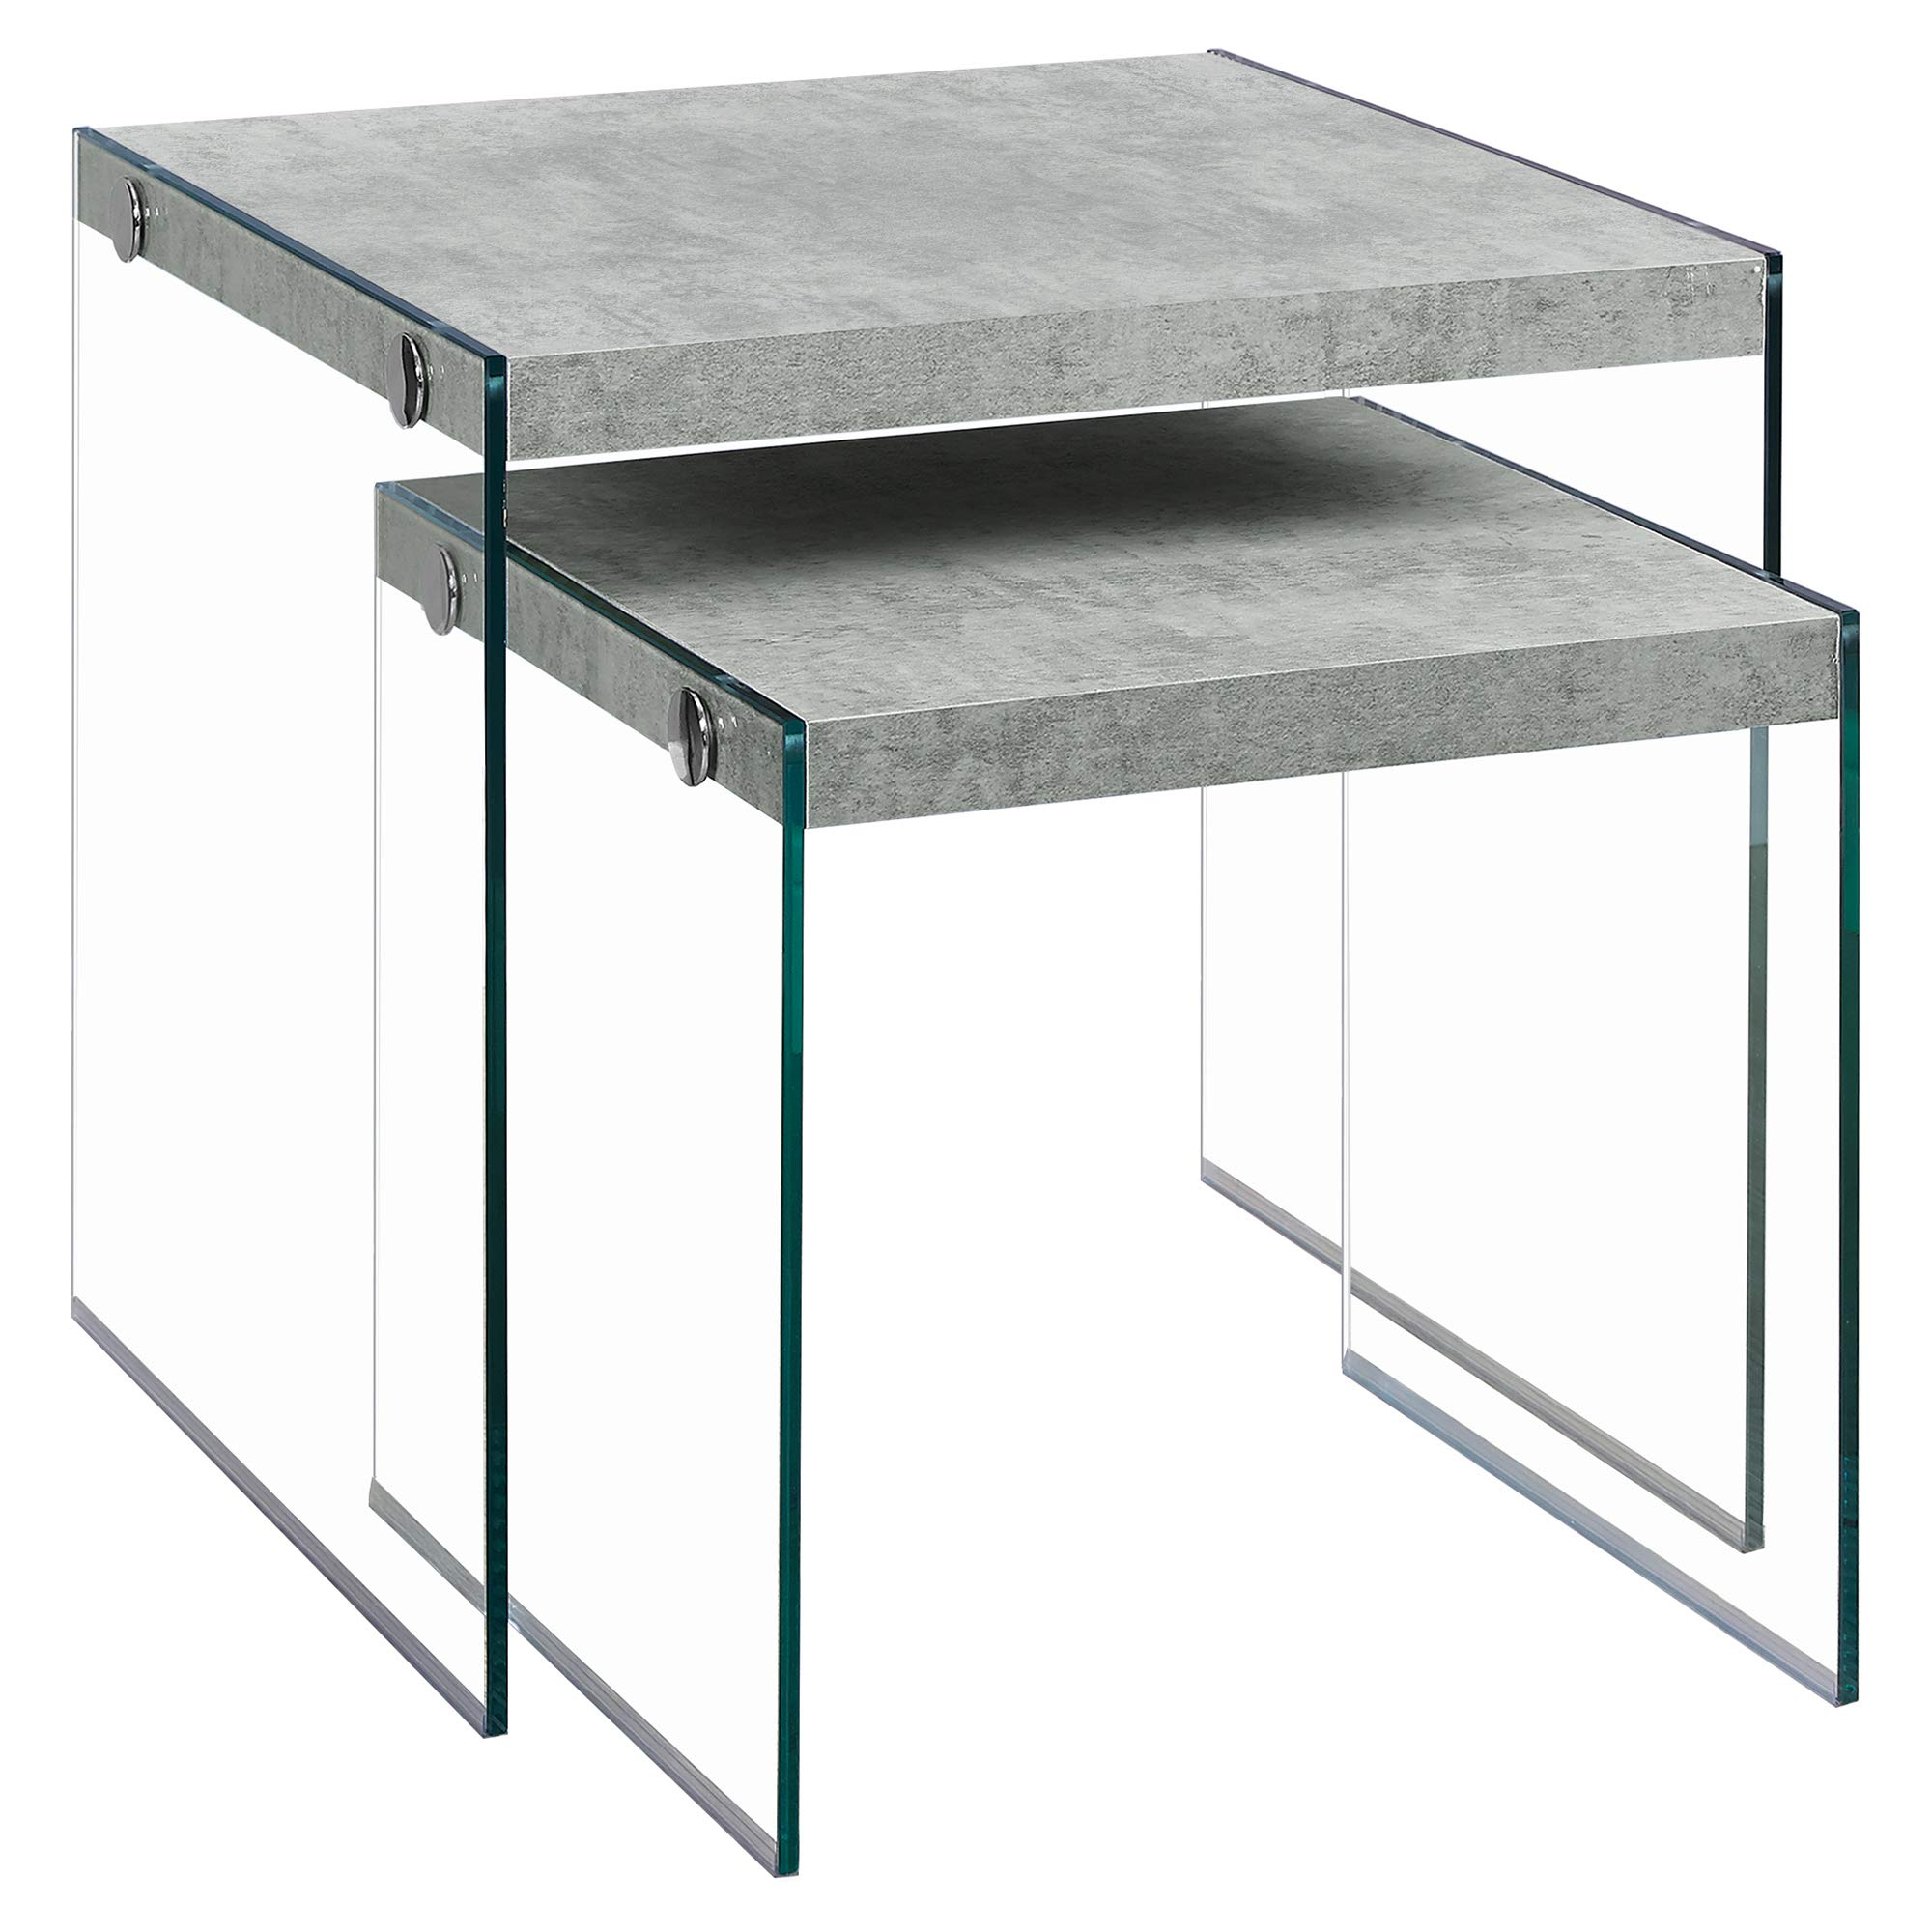 Monarch Specialties ,Nesting Table, Tempered Glass, Grey Cement by Monarch Specialties